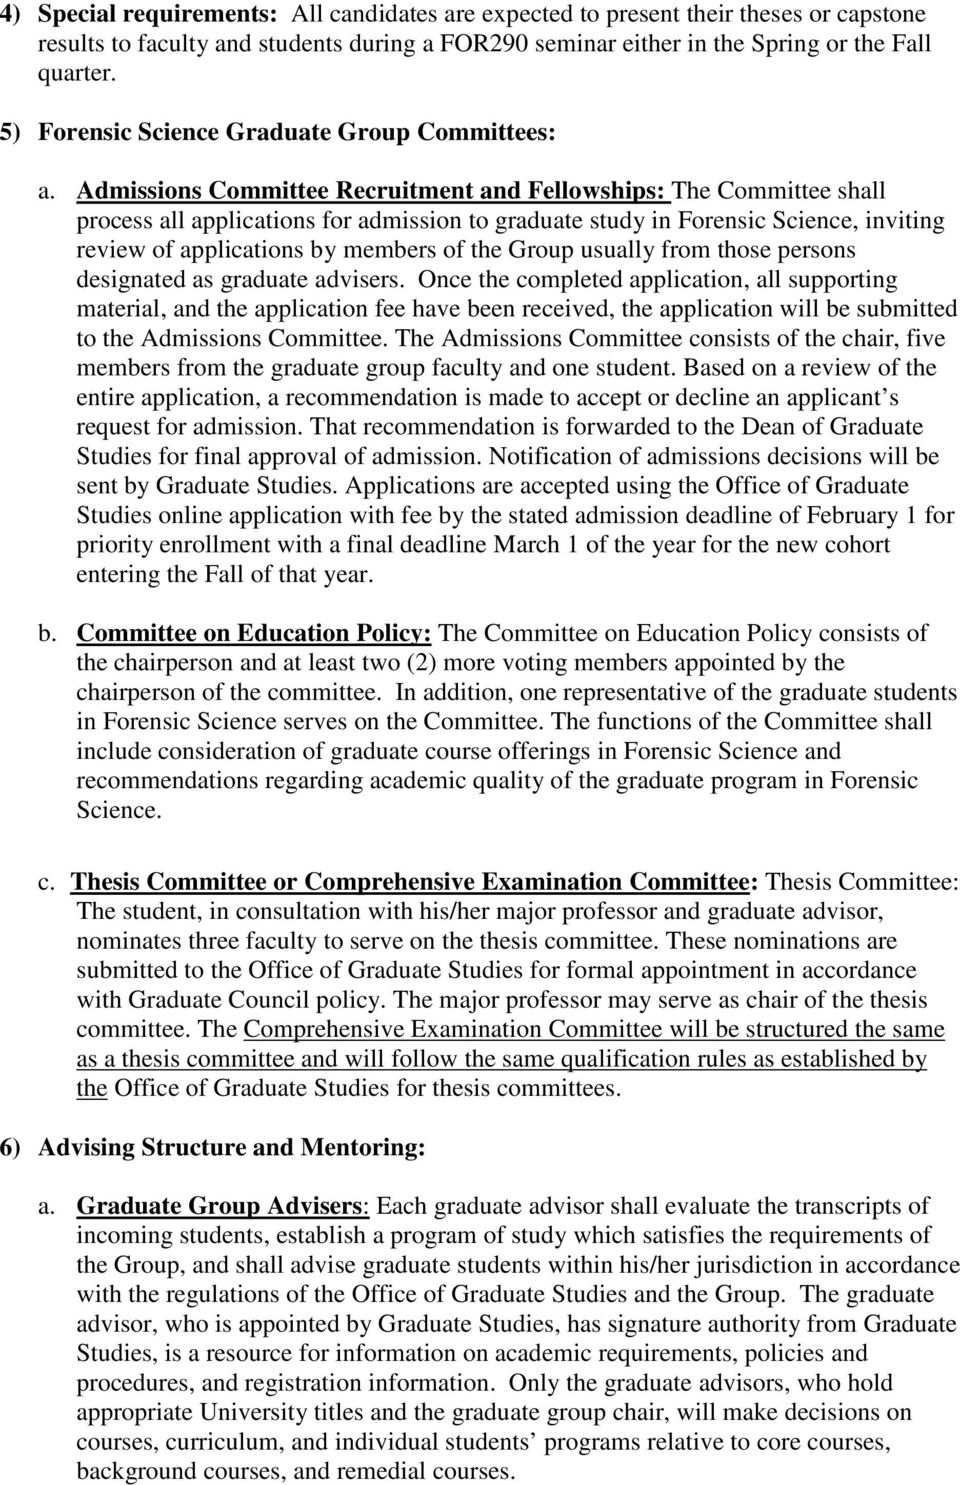 Admissions Committee Recruitment and Fellowships: The Committee shall process all applications for admission to graduate study in Forensic Science, inviting review of applications by members of the